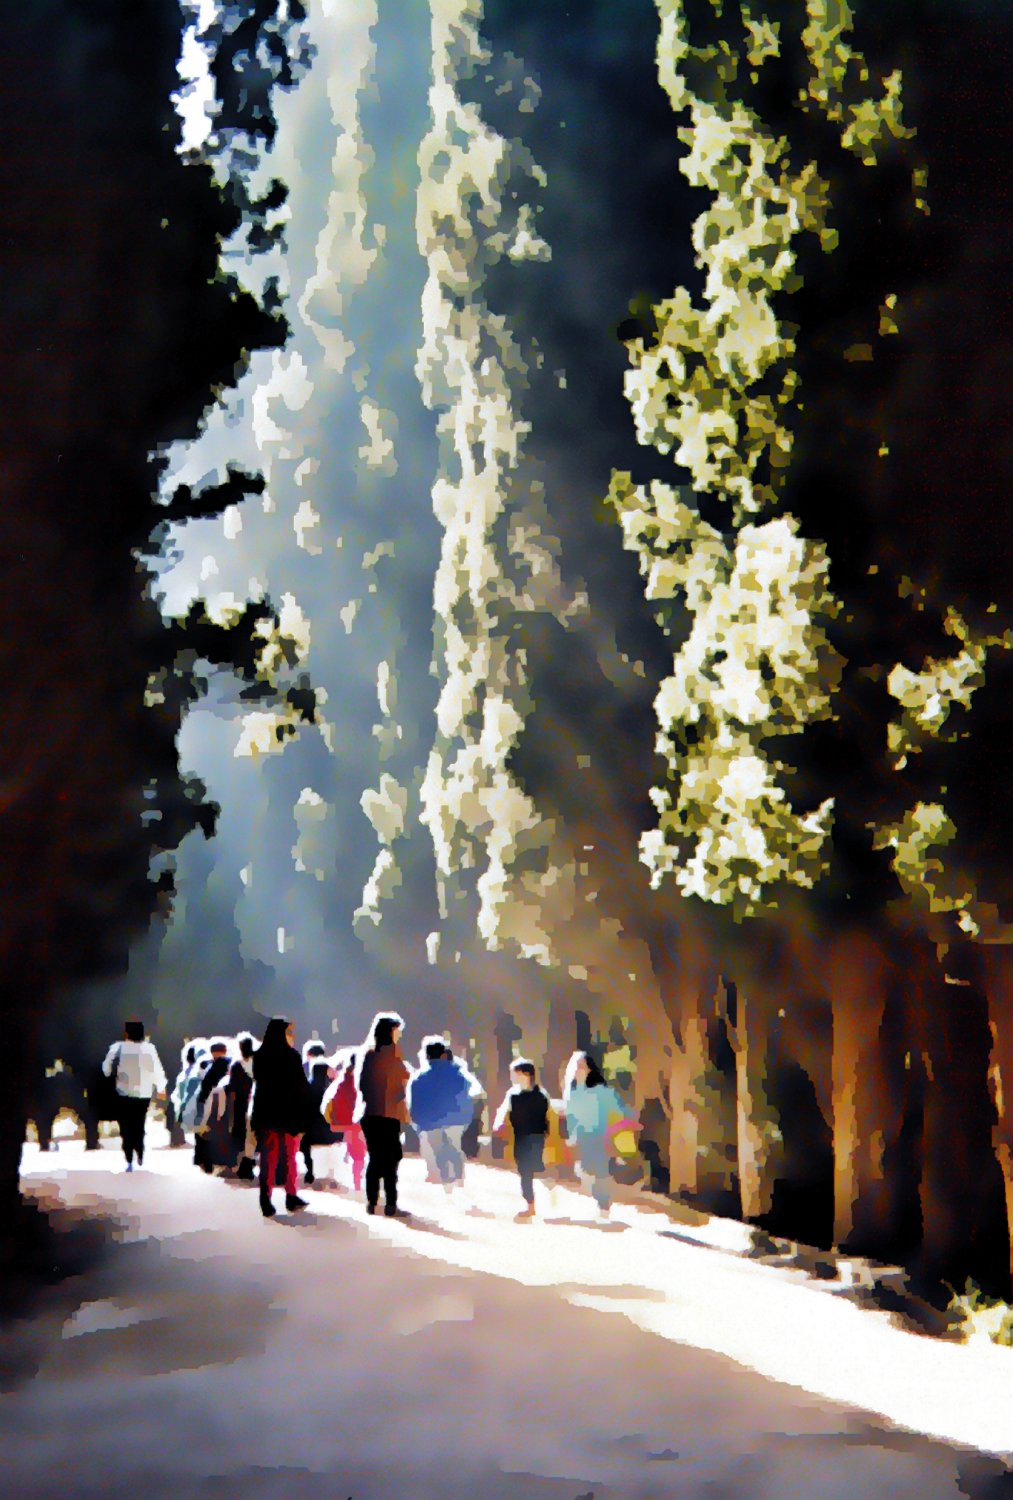 walking along the path at Alhambra in Spain - At the Alhambra - Techno-Impressionist Museum - Techno-Impressionism - art - beautiful - photo photography picture - by Tony Karp